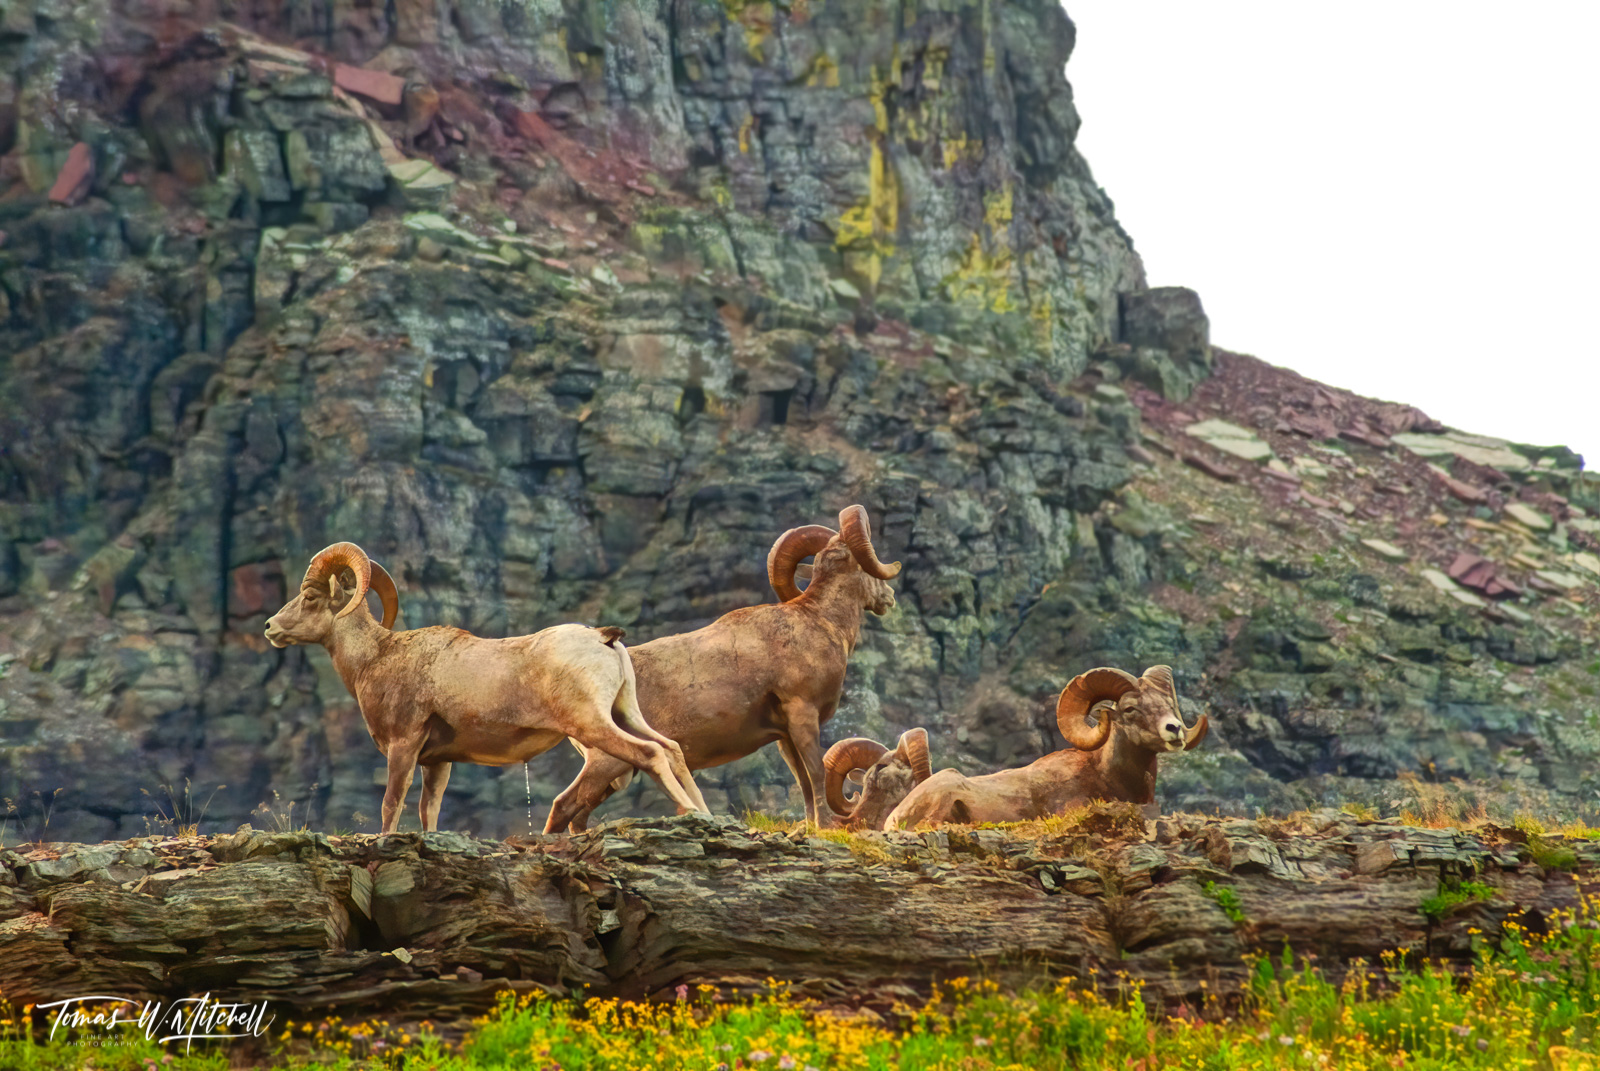 limited edition, fine art, prints, glacier national park, bighorn sheep, rams, photograph, photo